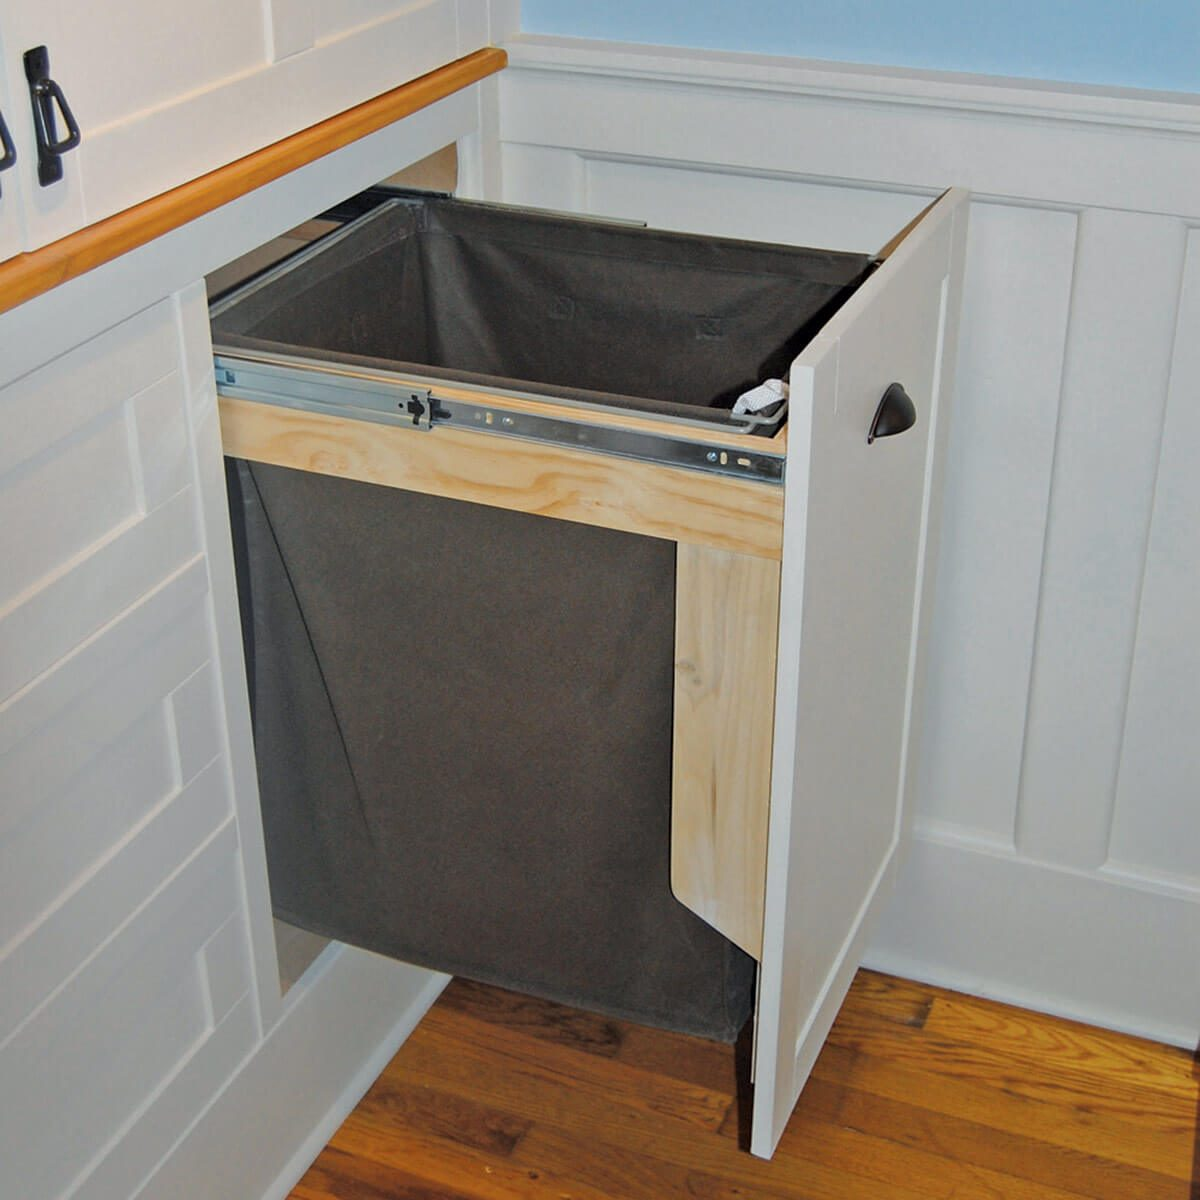 laundry room ideas Slide out laundry hamper